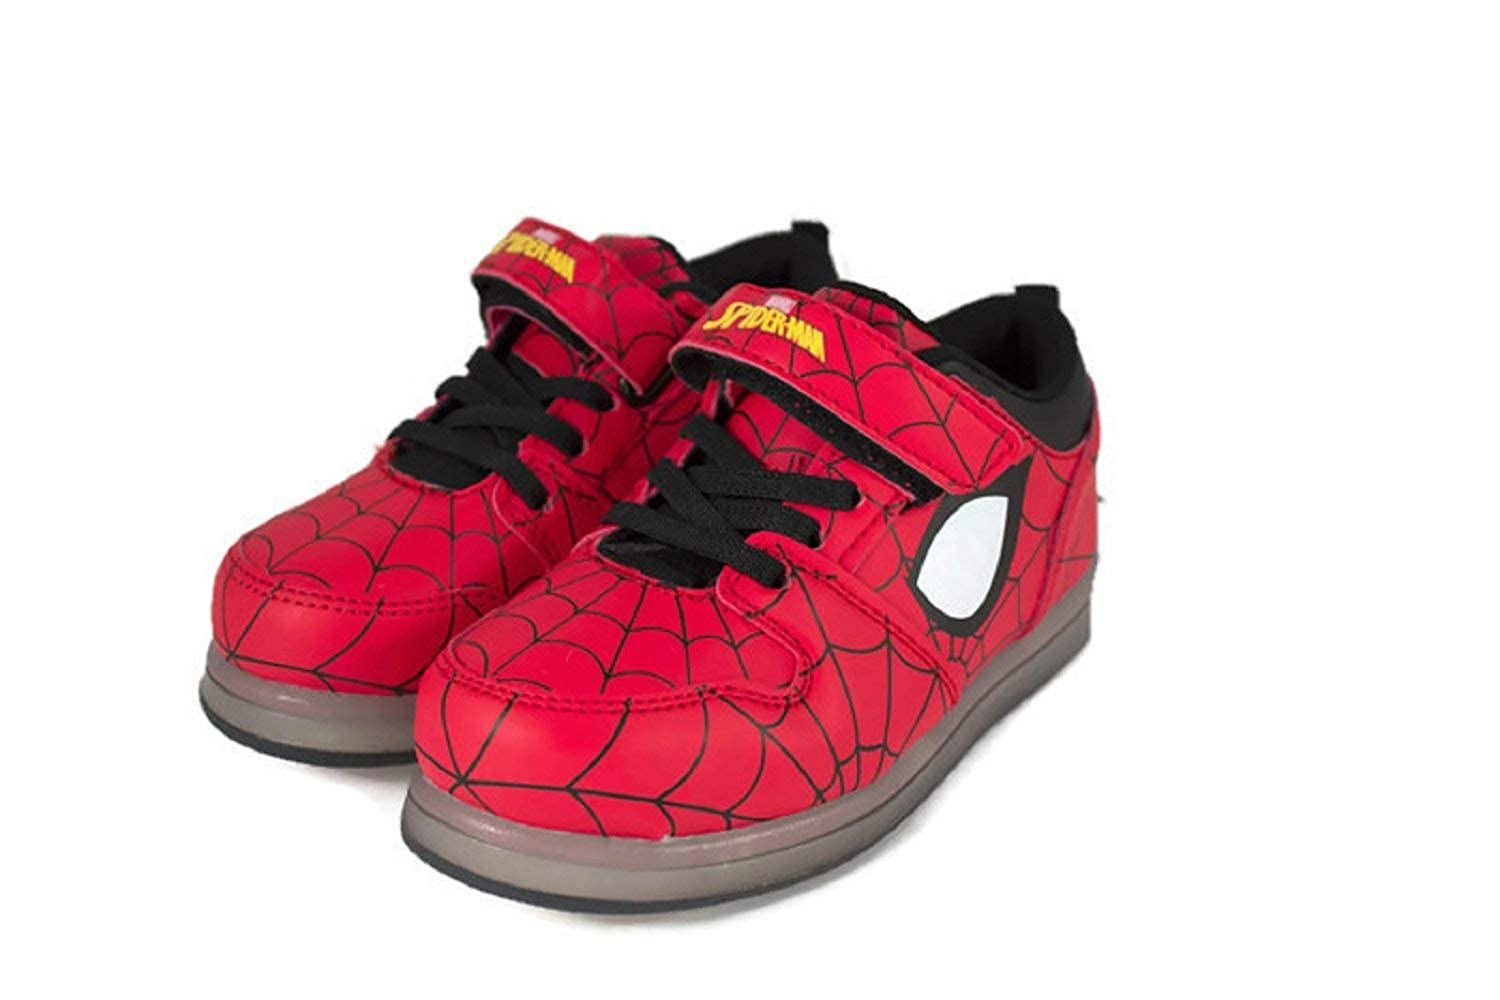 Favorite Characters Spiderman Motion Lighted Athletic Shoes (Toddler/Little Kid)